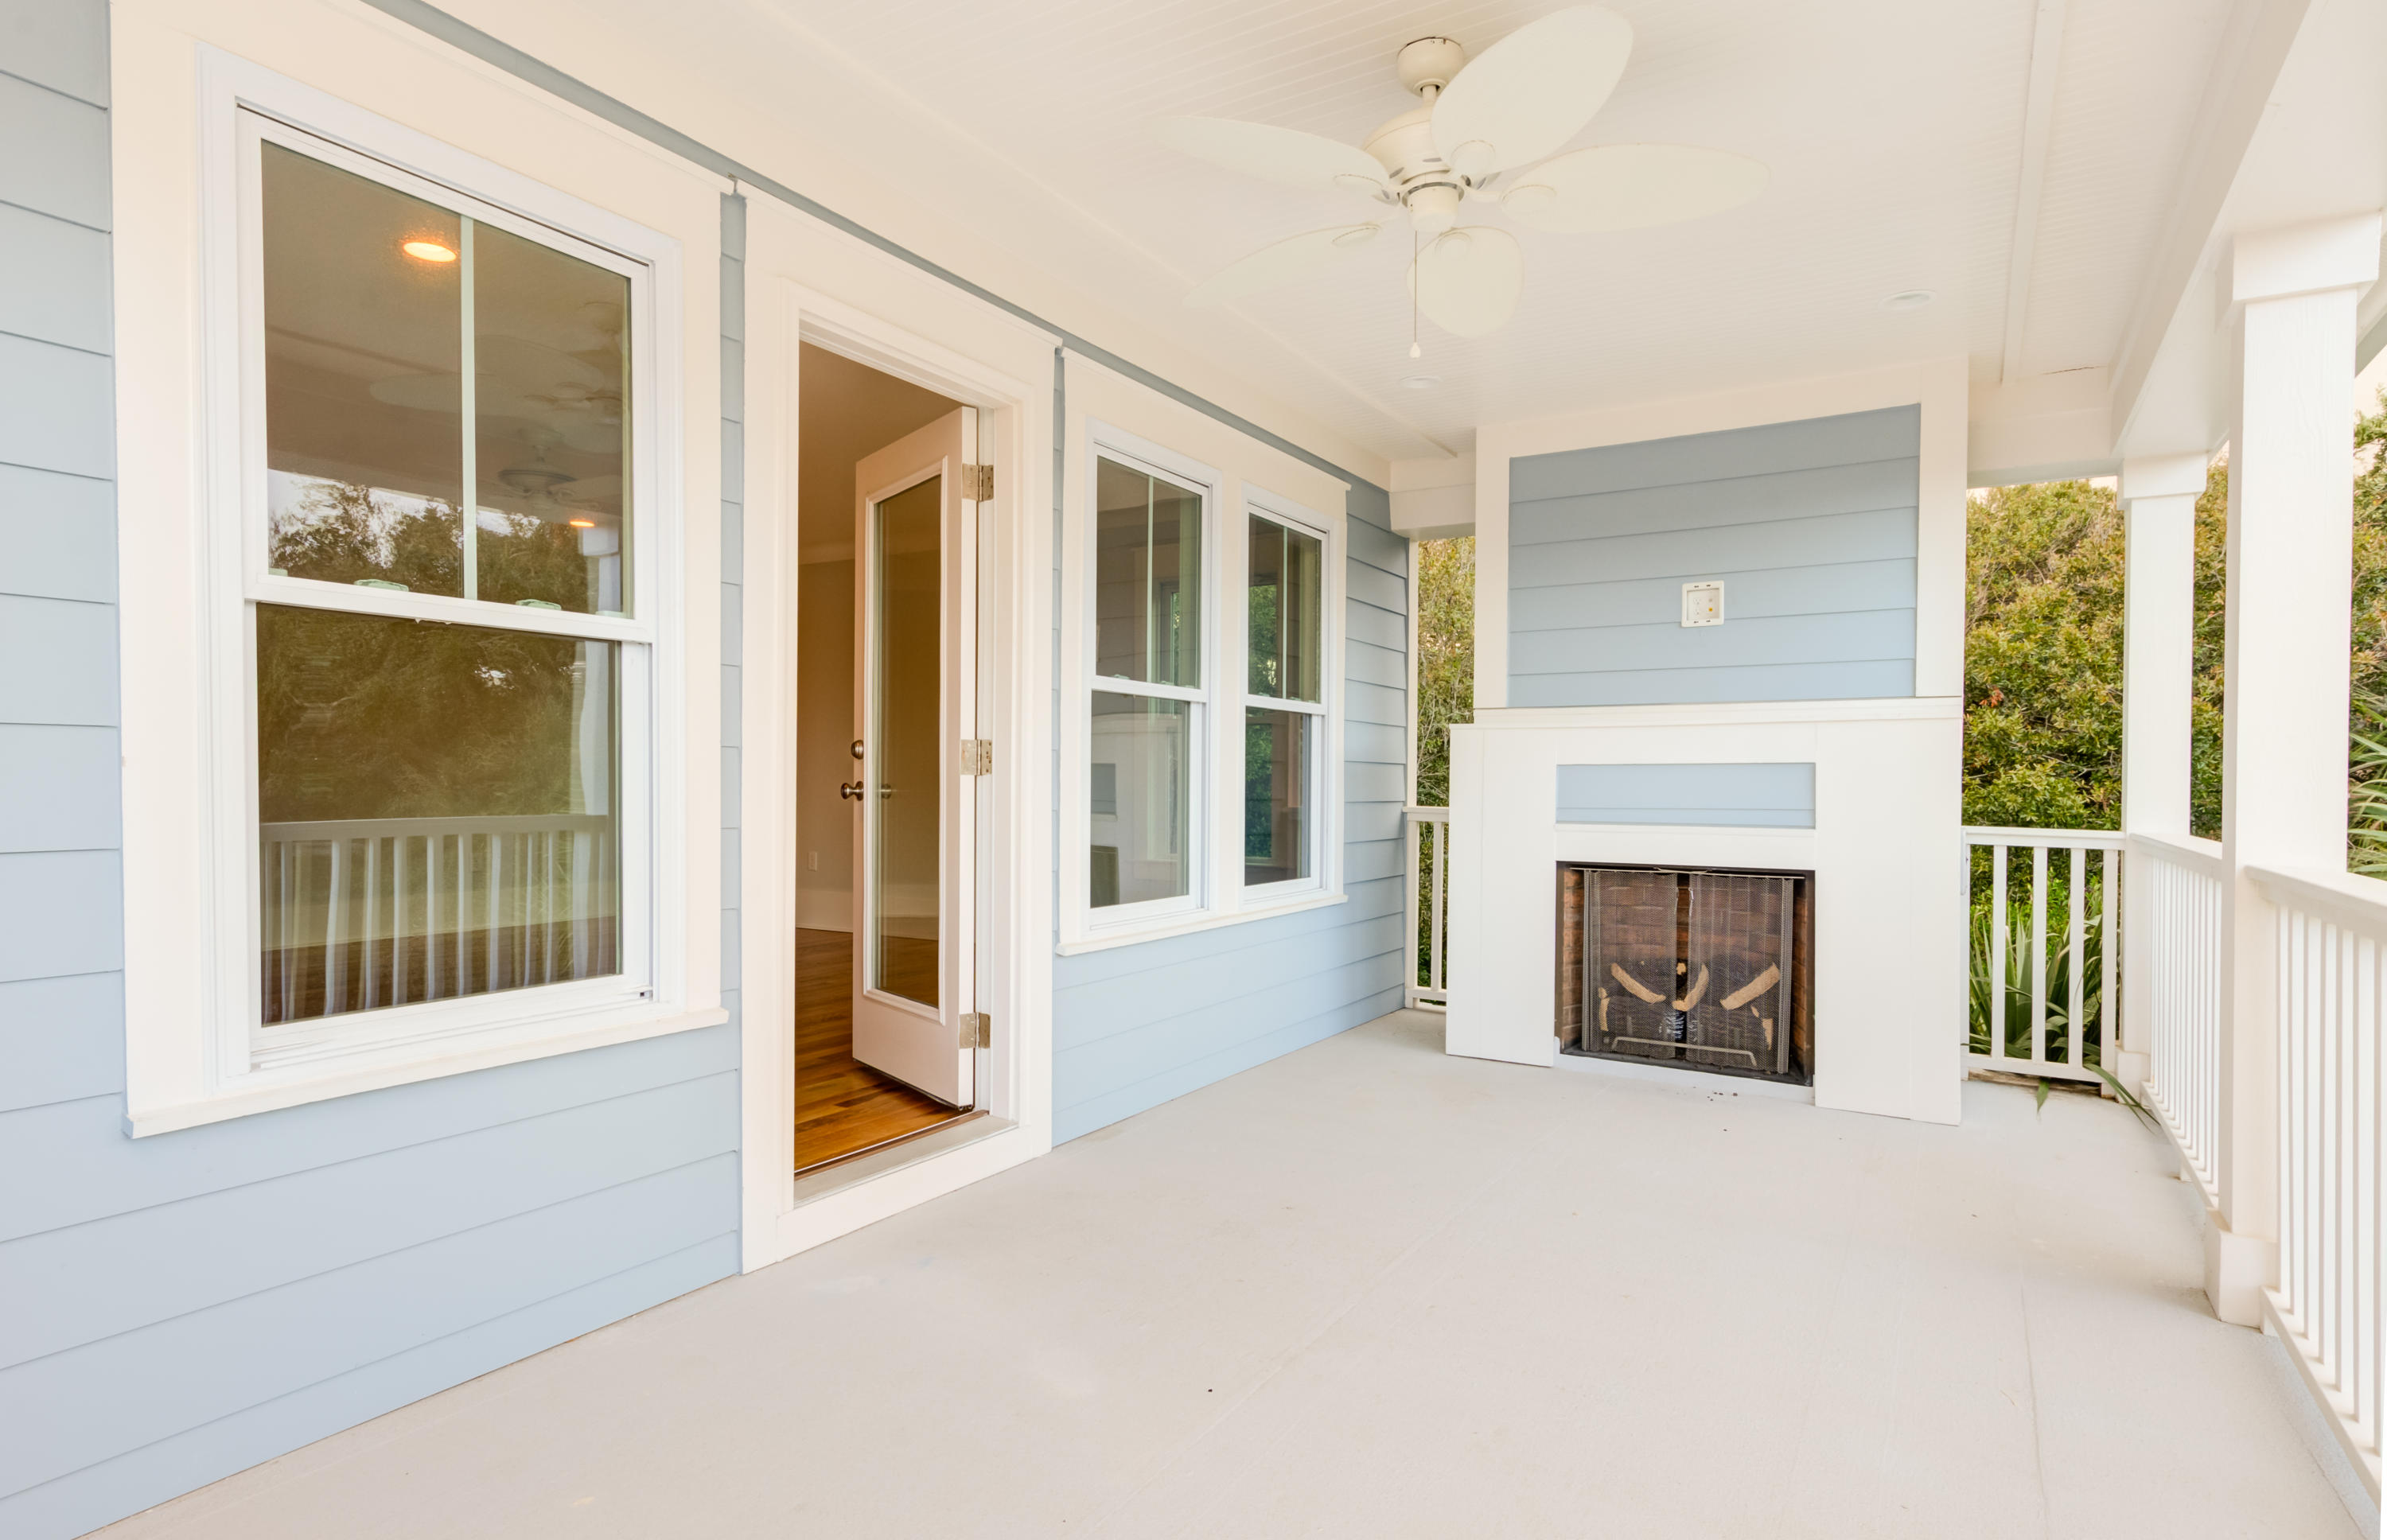 Isle of Palms Homes For Sale - 7 36th, Isle of Palms, SC - 41